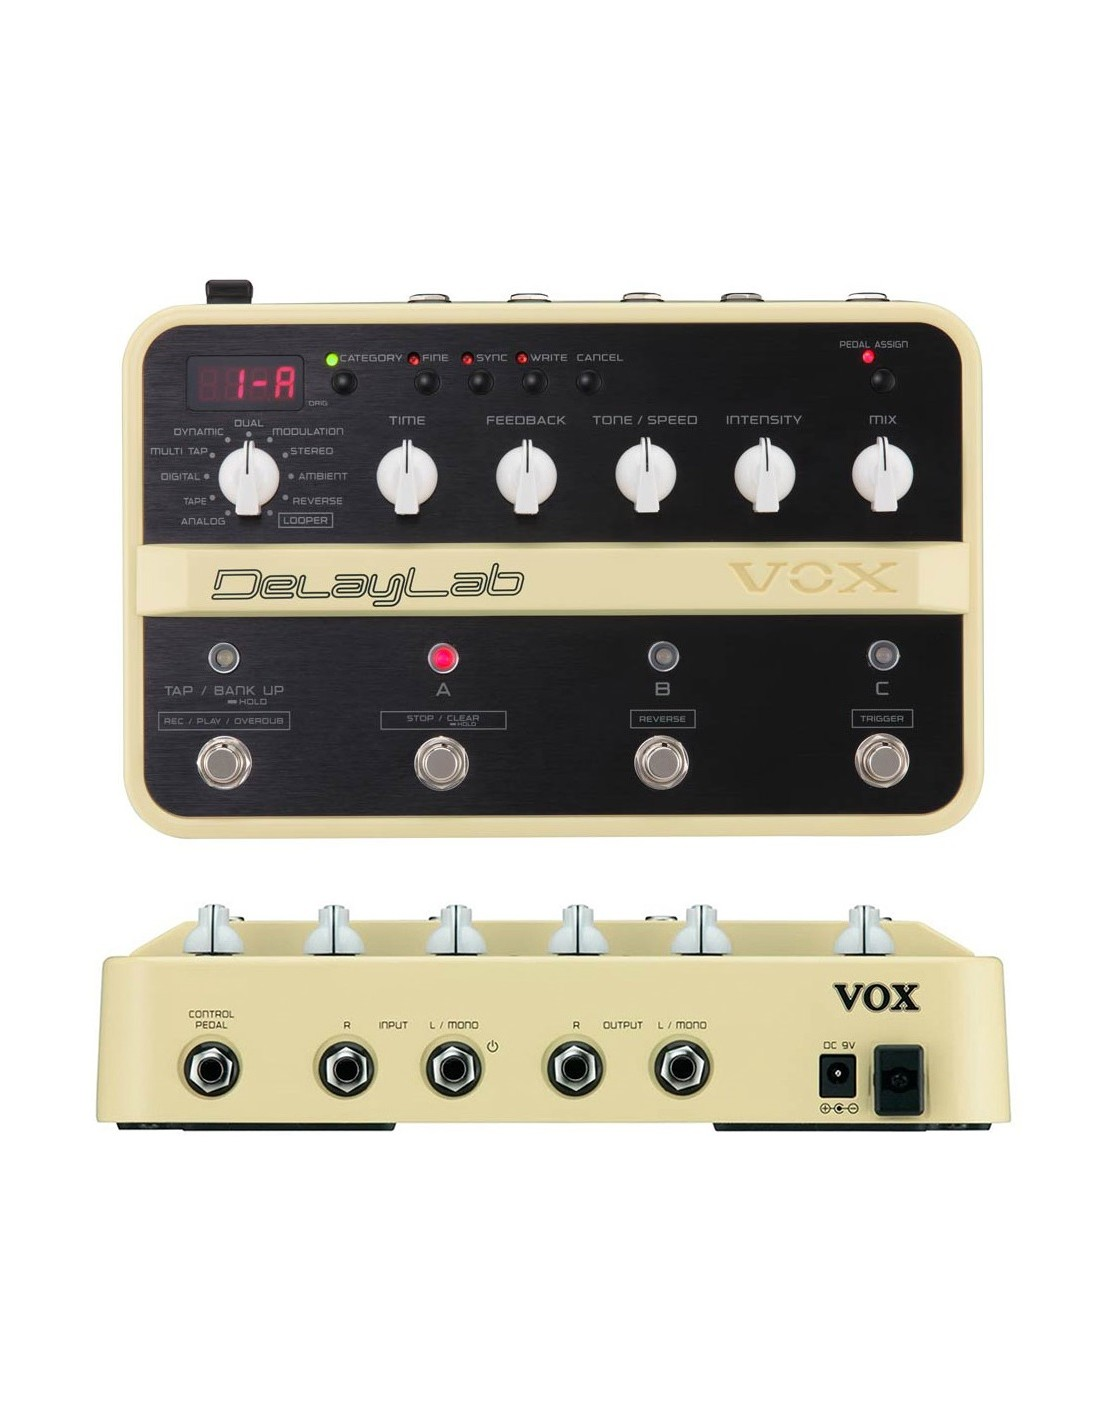 vox delaylab guitar multi effects pedal re sale great condition. Black Bedroom Furniture Sets. Home Design Ideas